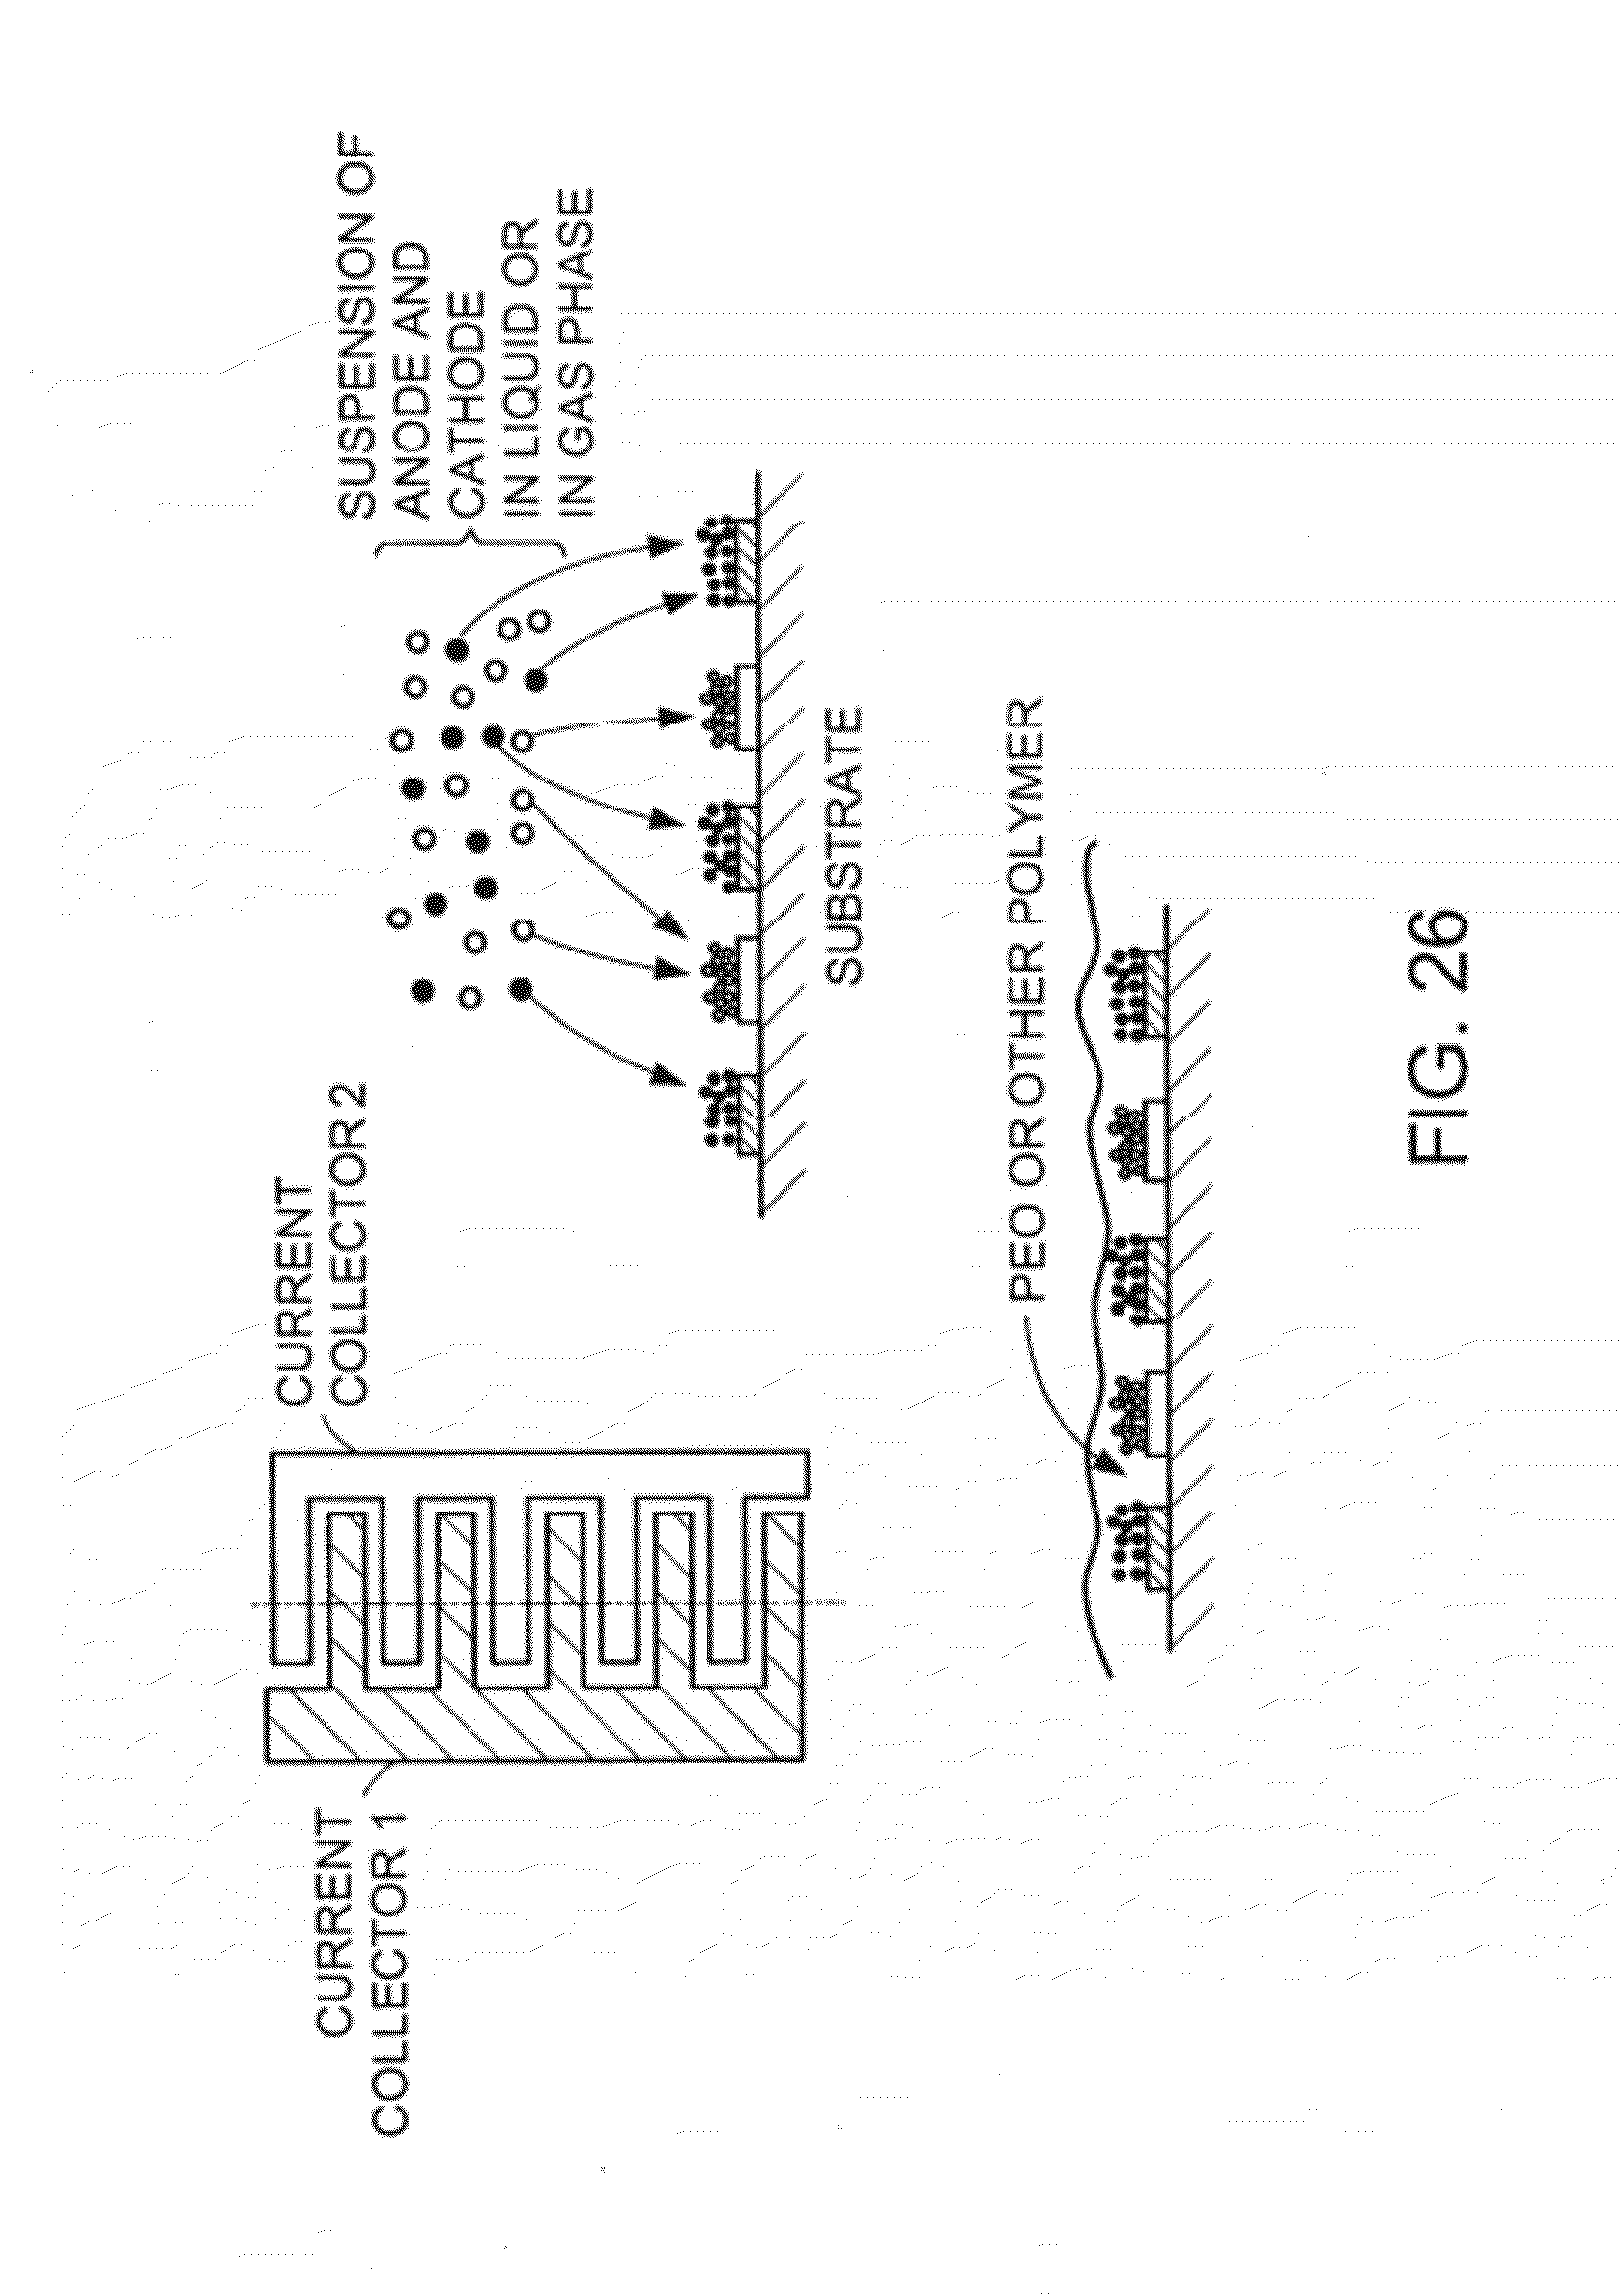 US20120251896A1 - Battery structures, self-organizing